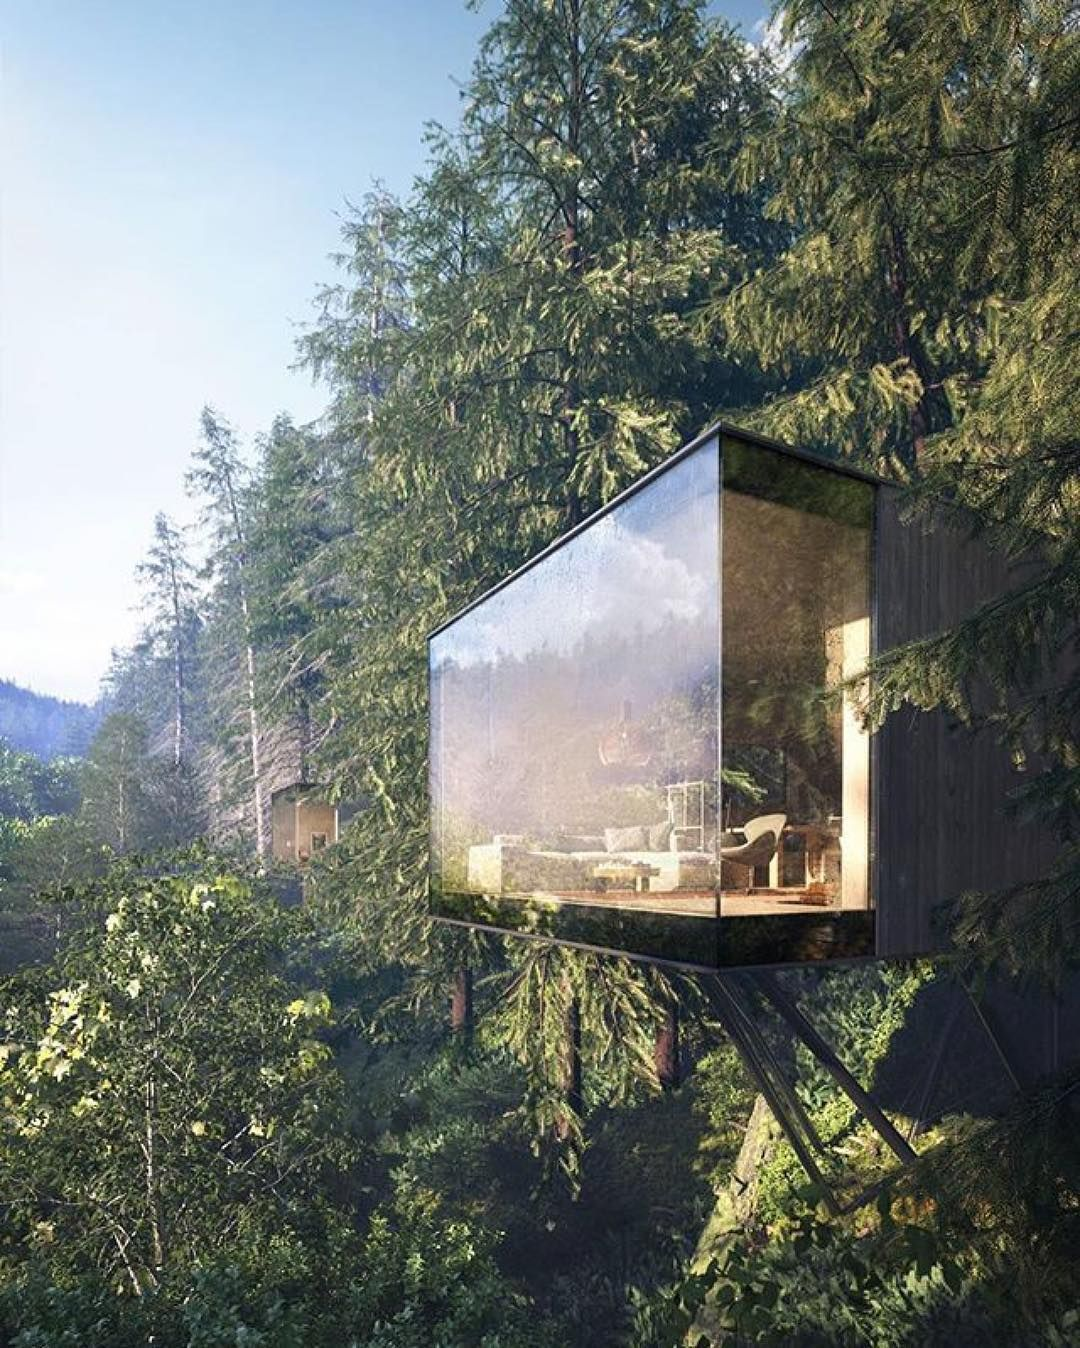 Two Hillside Cabins In The Trees By Feldman Architecture: Revugia Spa & Wellness Resort Hotel By Matthias